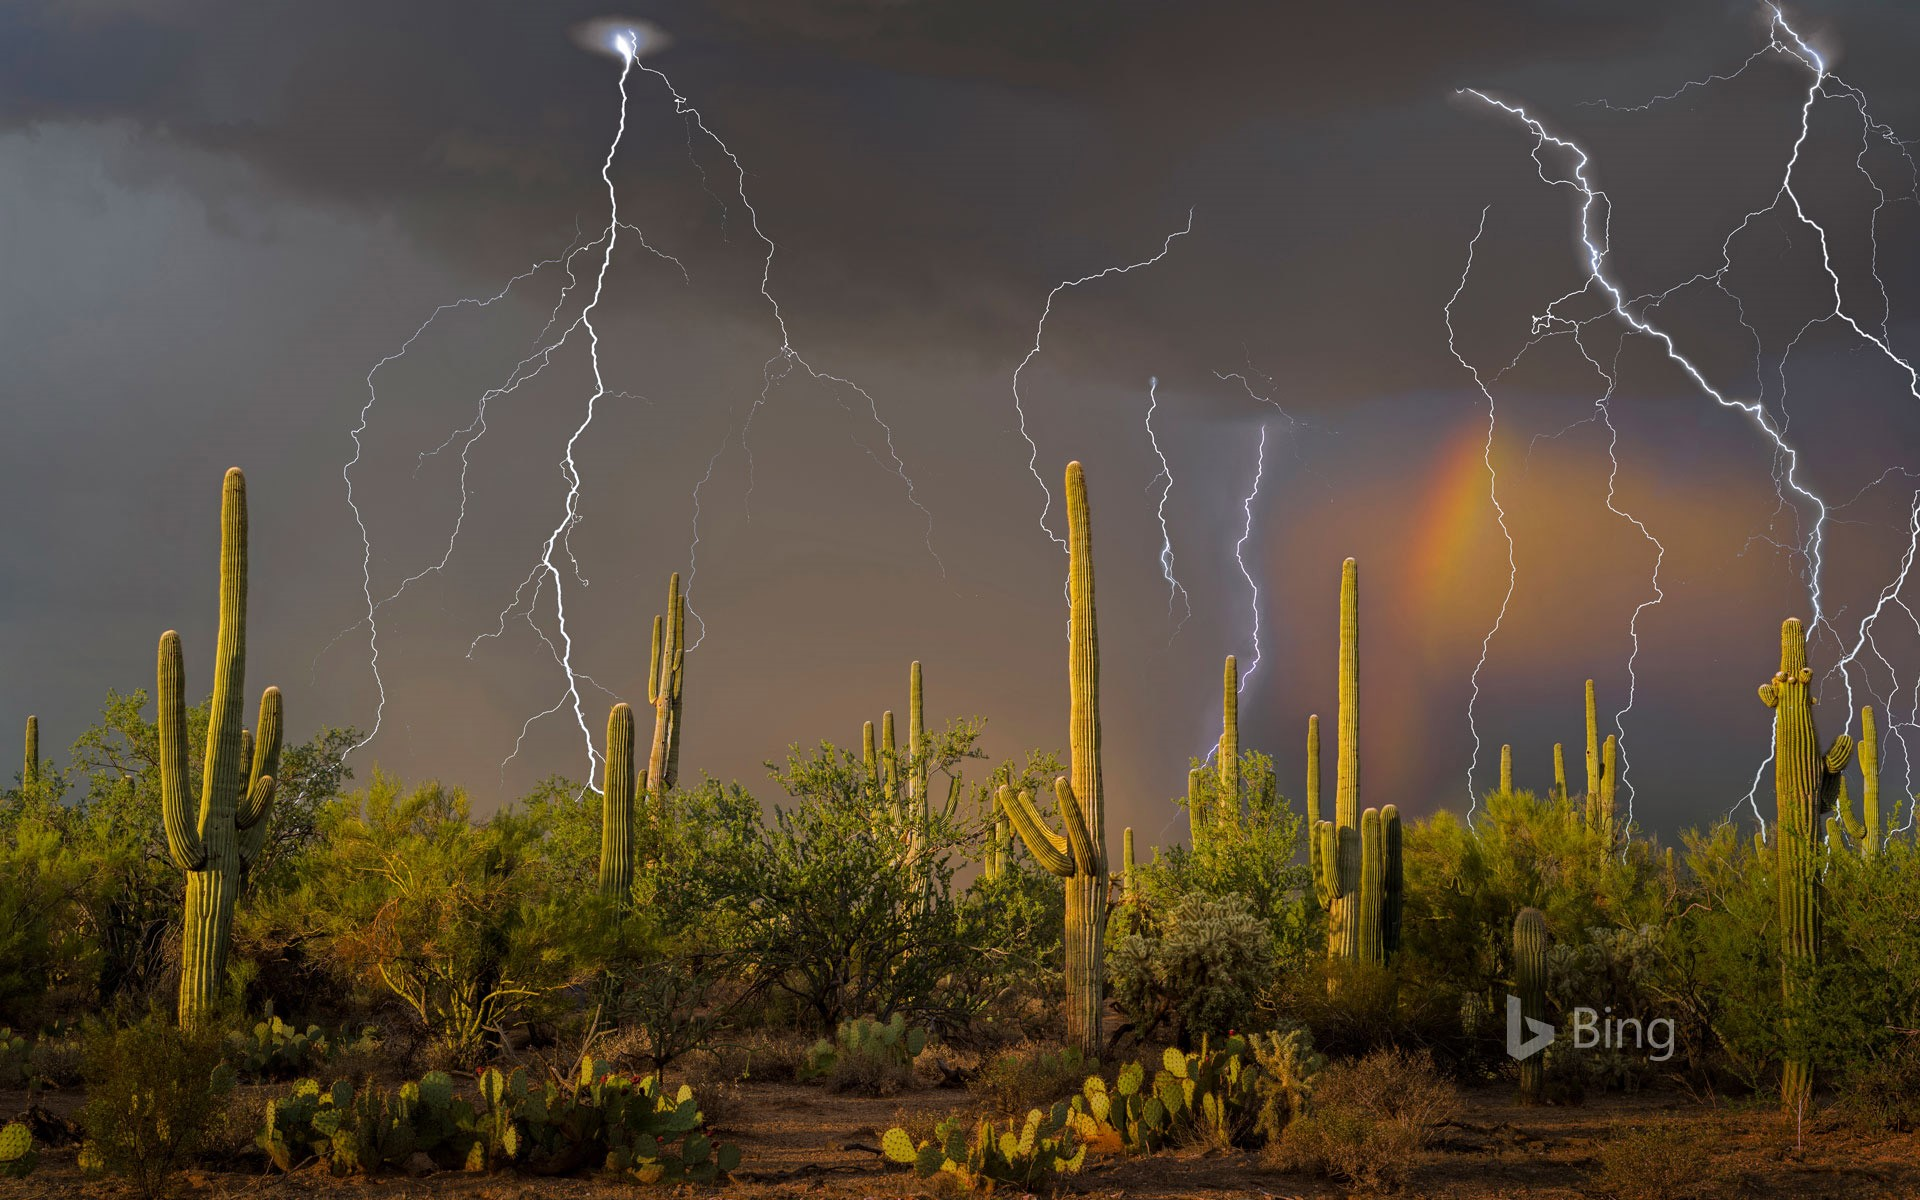 Lightning storm in the Tortolita Mountain foothills, north of Tucson, Arizona, USA